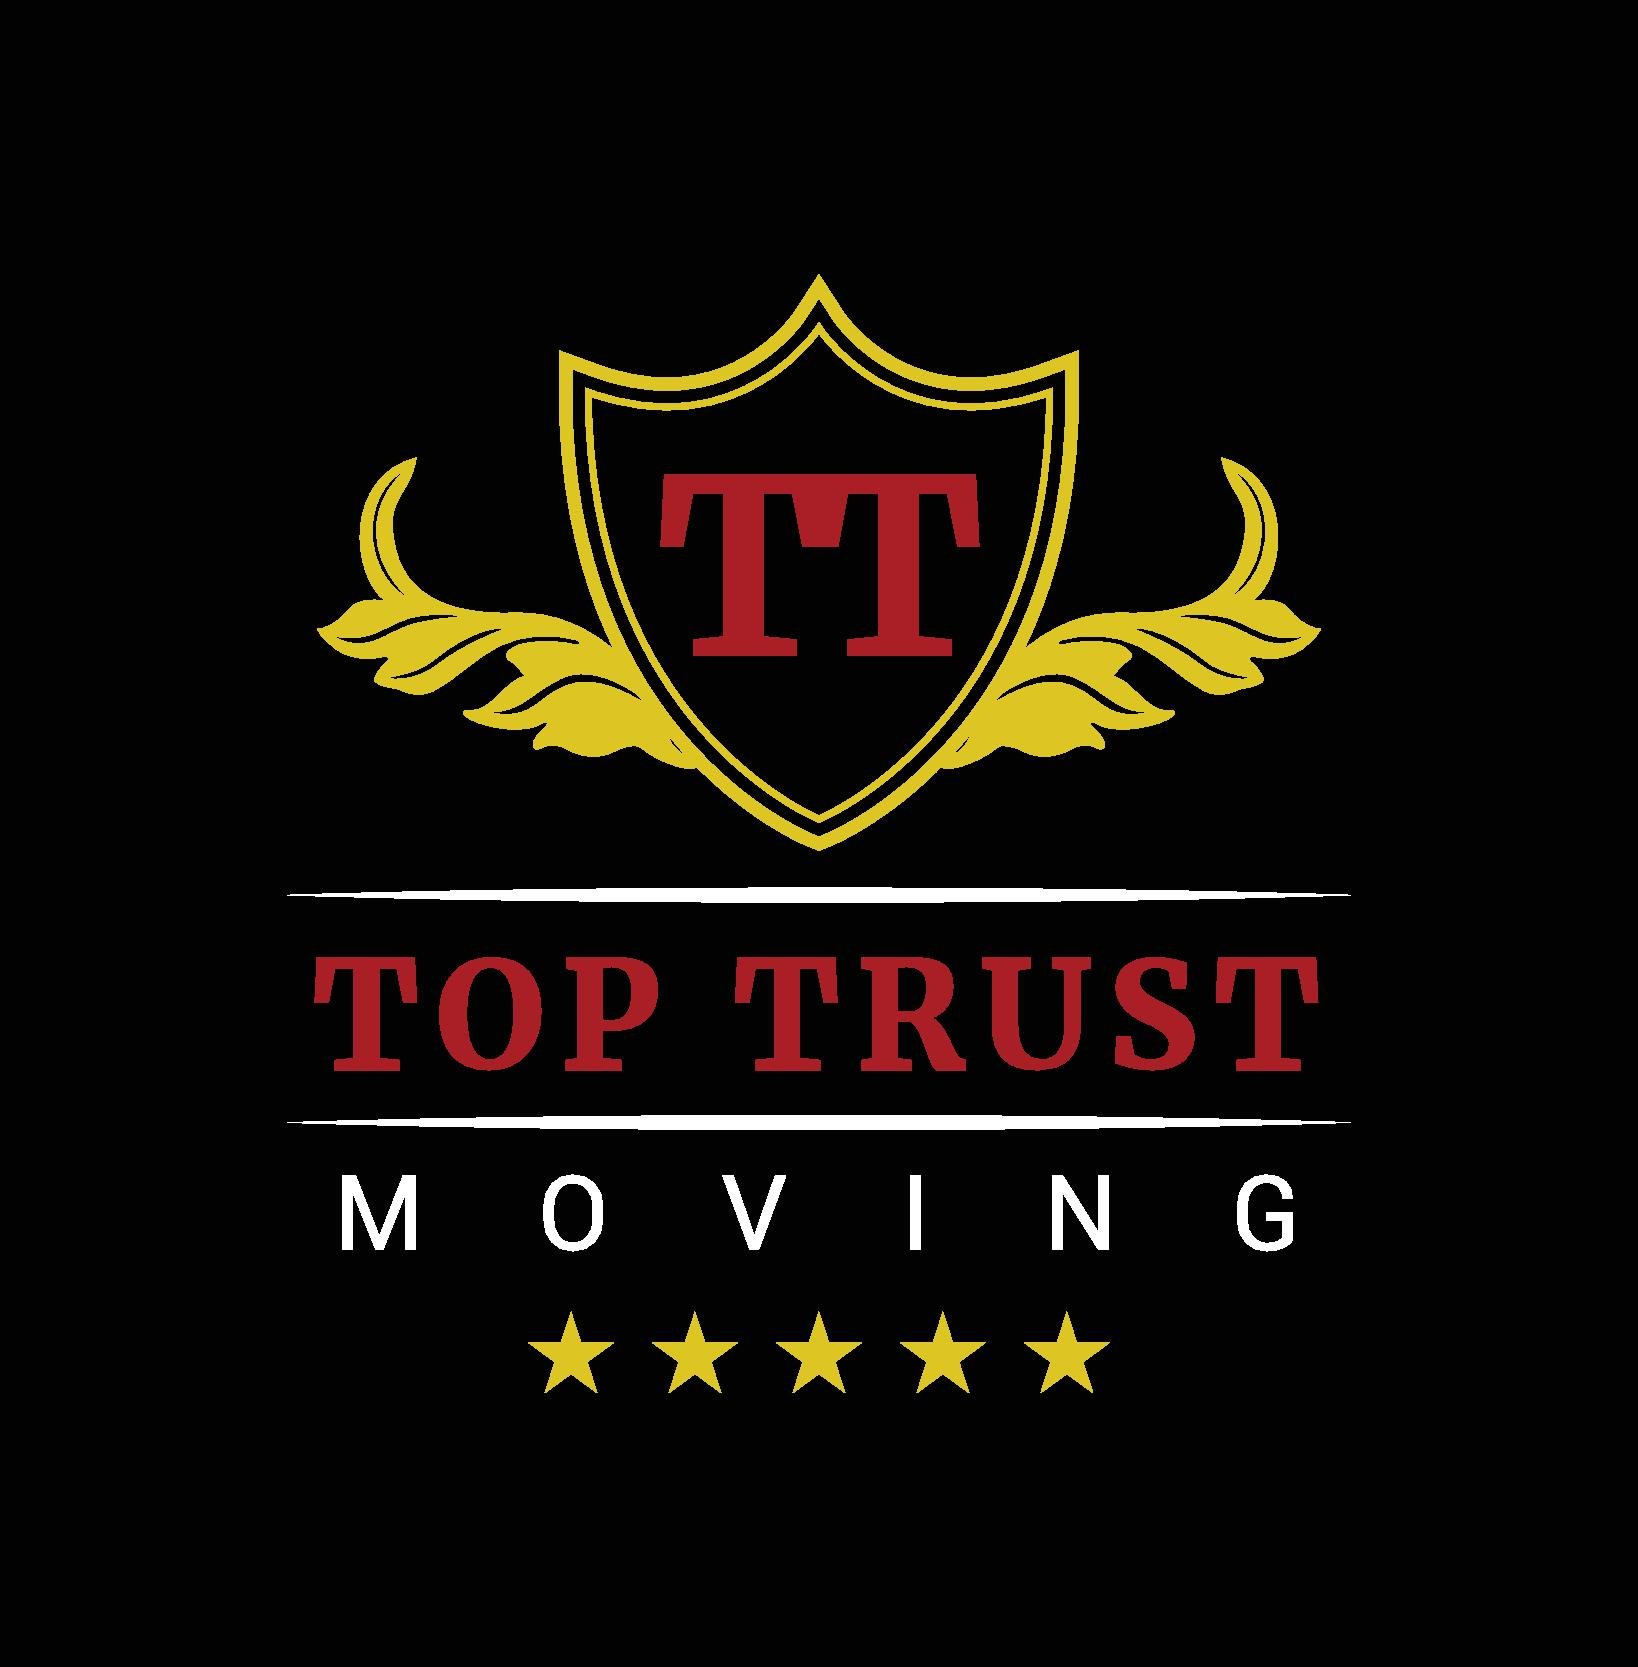 Top Trust Moving